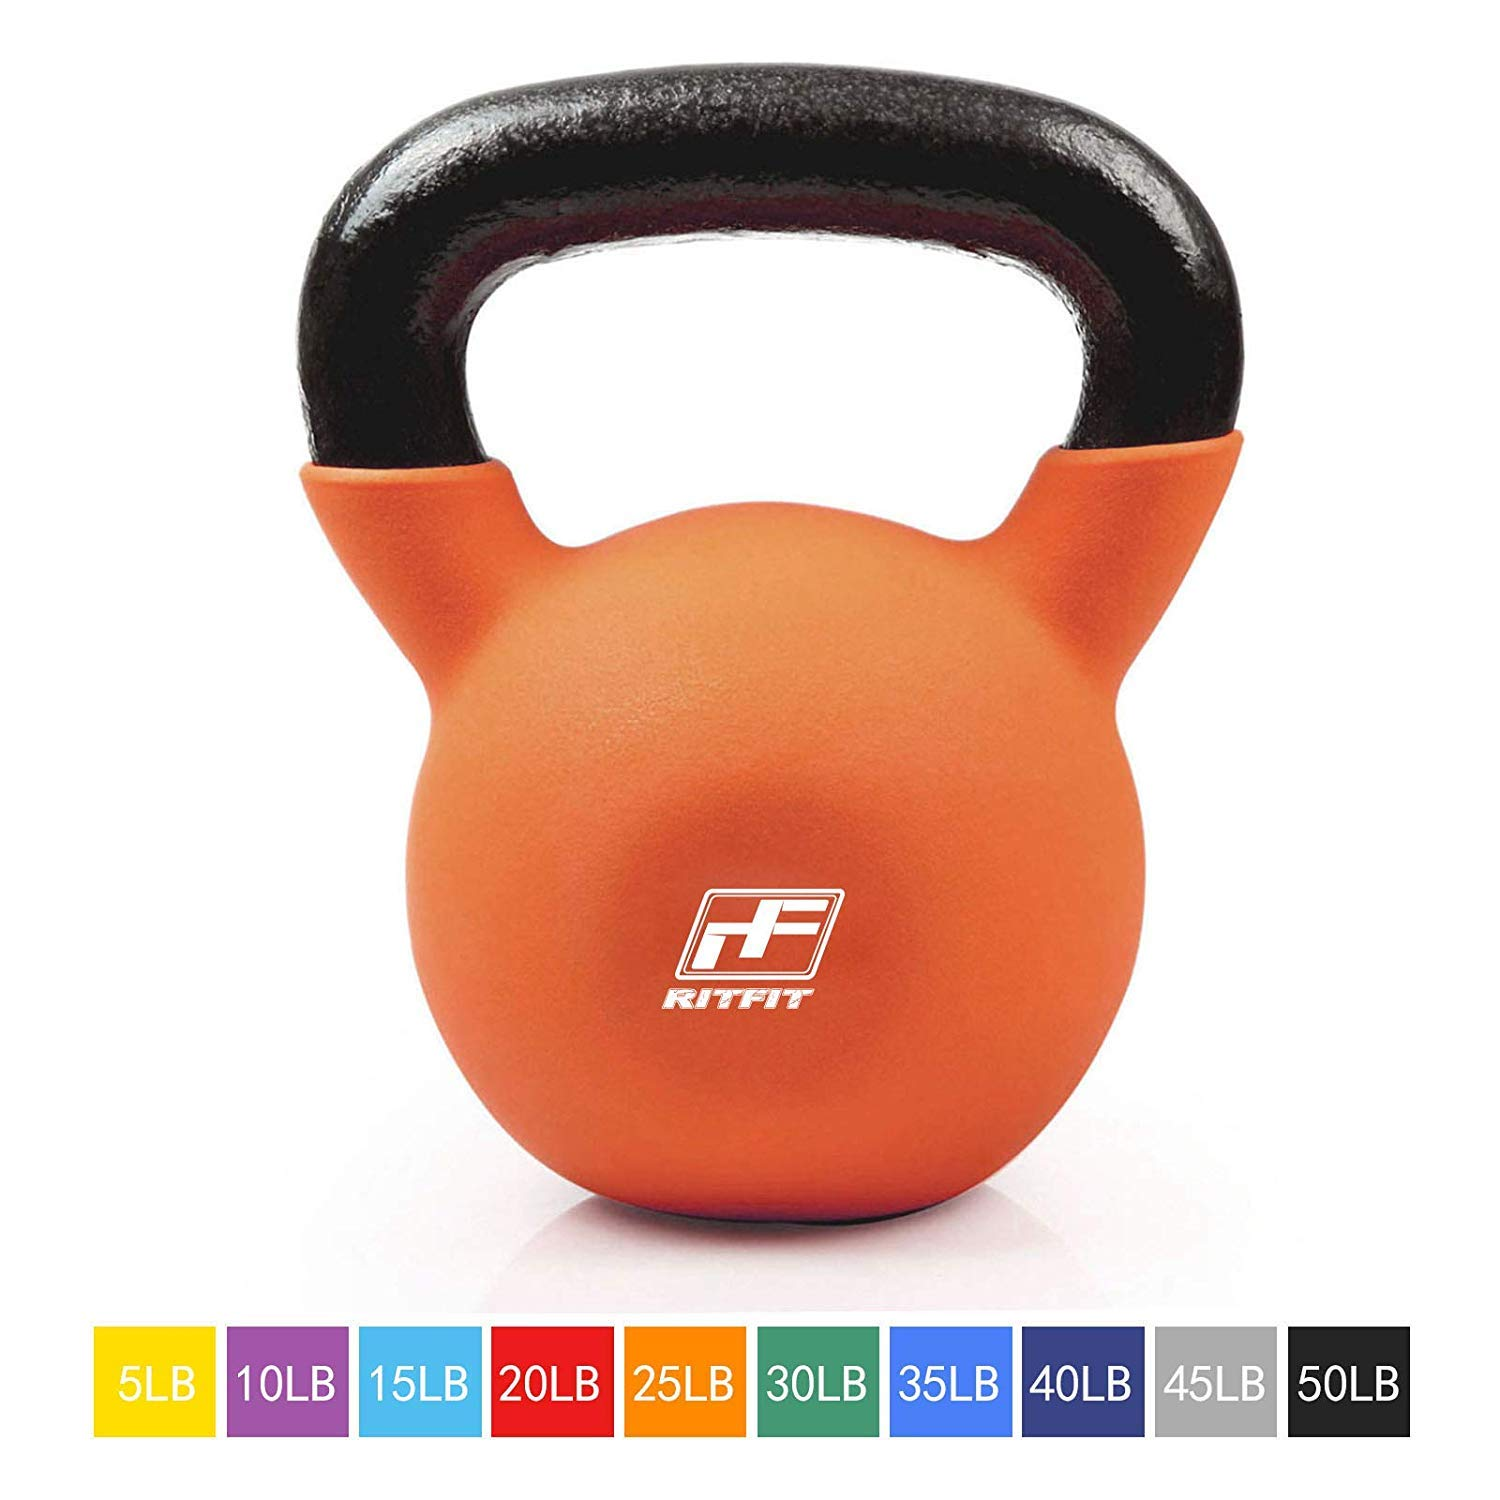 RitFit Neoprene Coated Solid Cast Iron Kettlebell - Great for Full Body Workout, Cross-Training, Weight Loss & Strength Training (5/10/15/20/25/30/35/40/45/50 LB) (25LB(Orange))